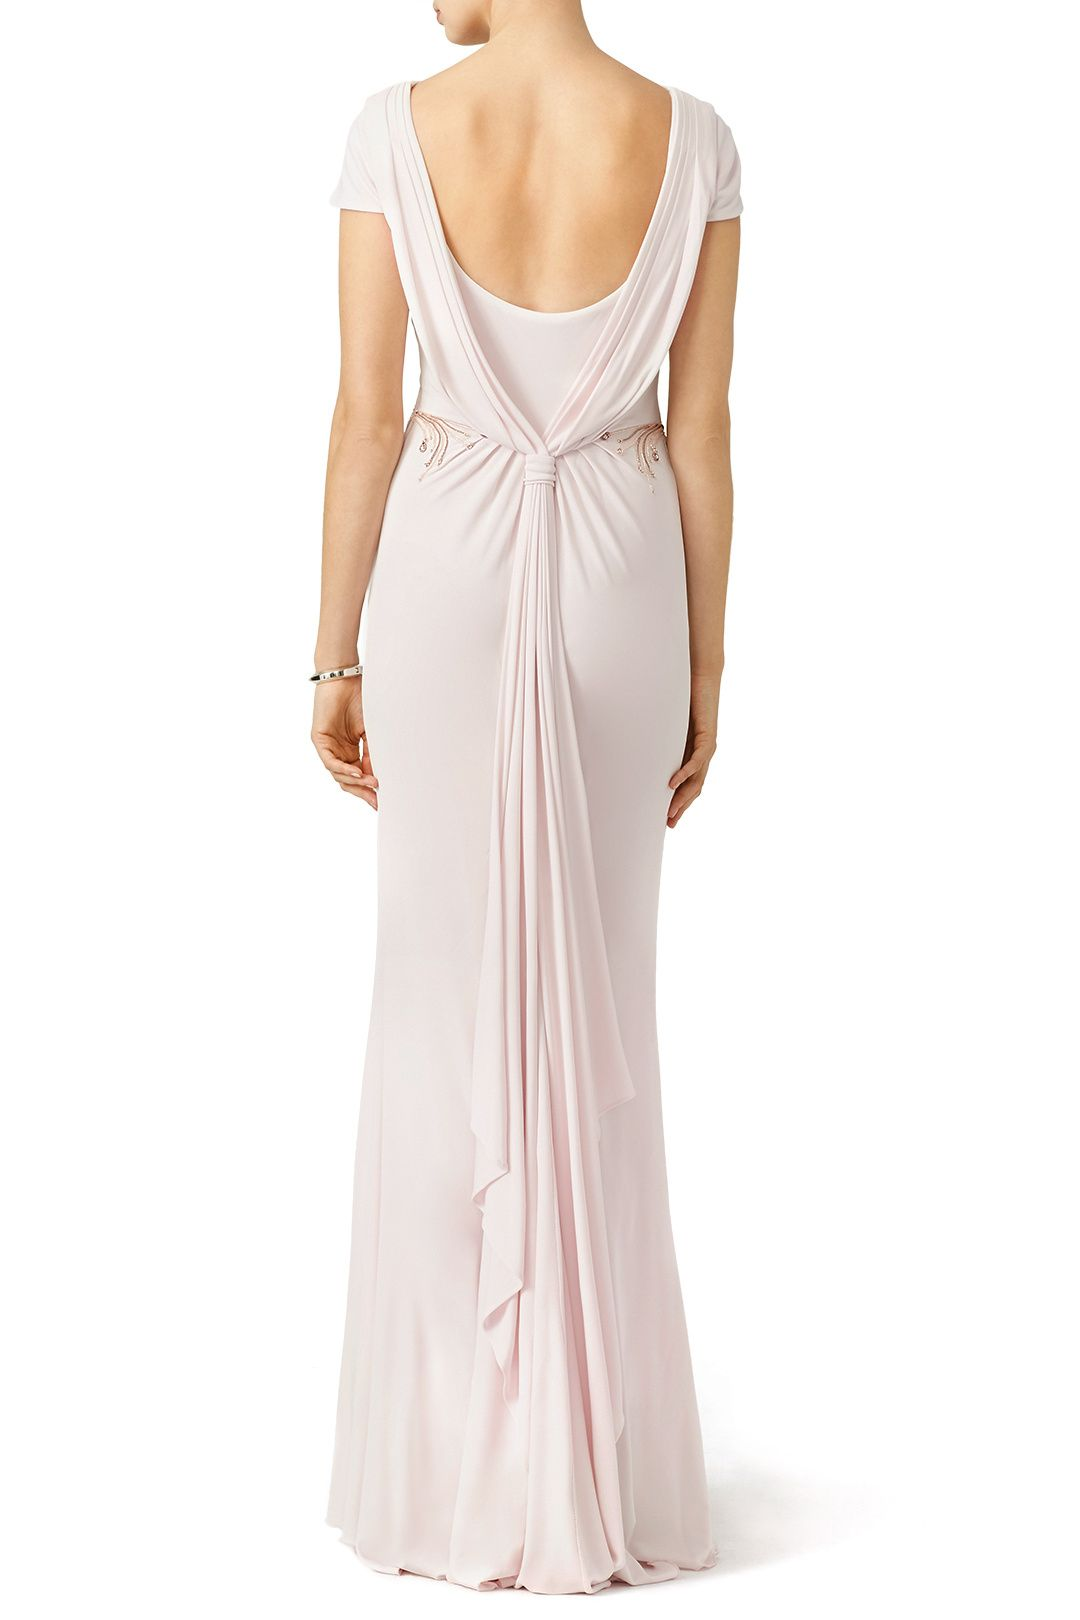 Blush Belle Gown by Badgley Mischka for $174   Rent the Runway